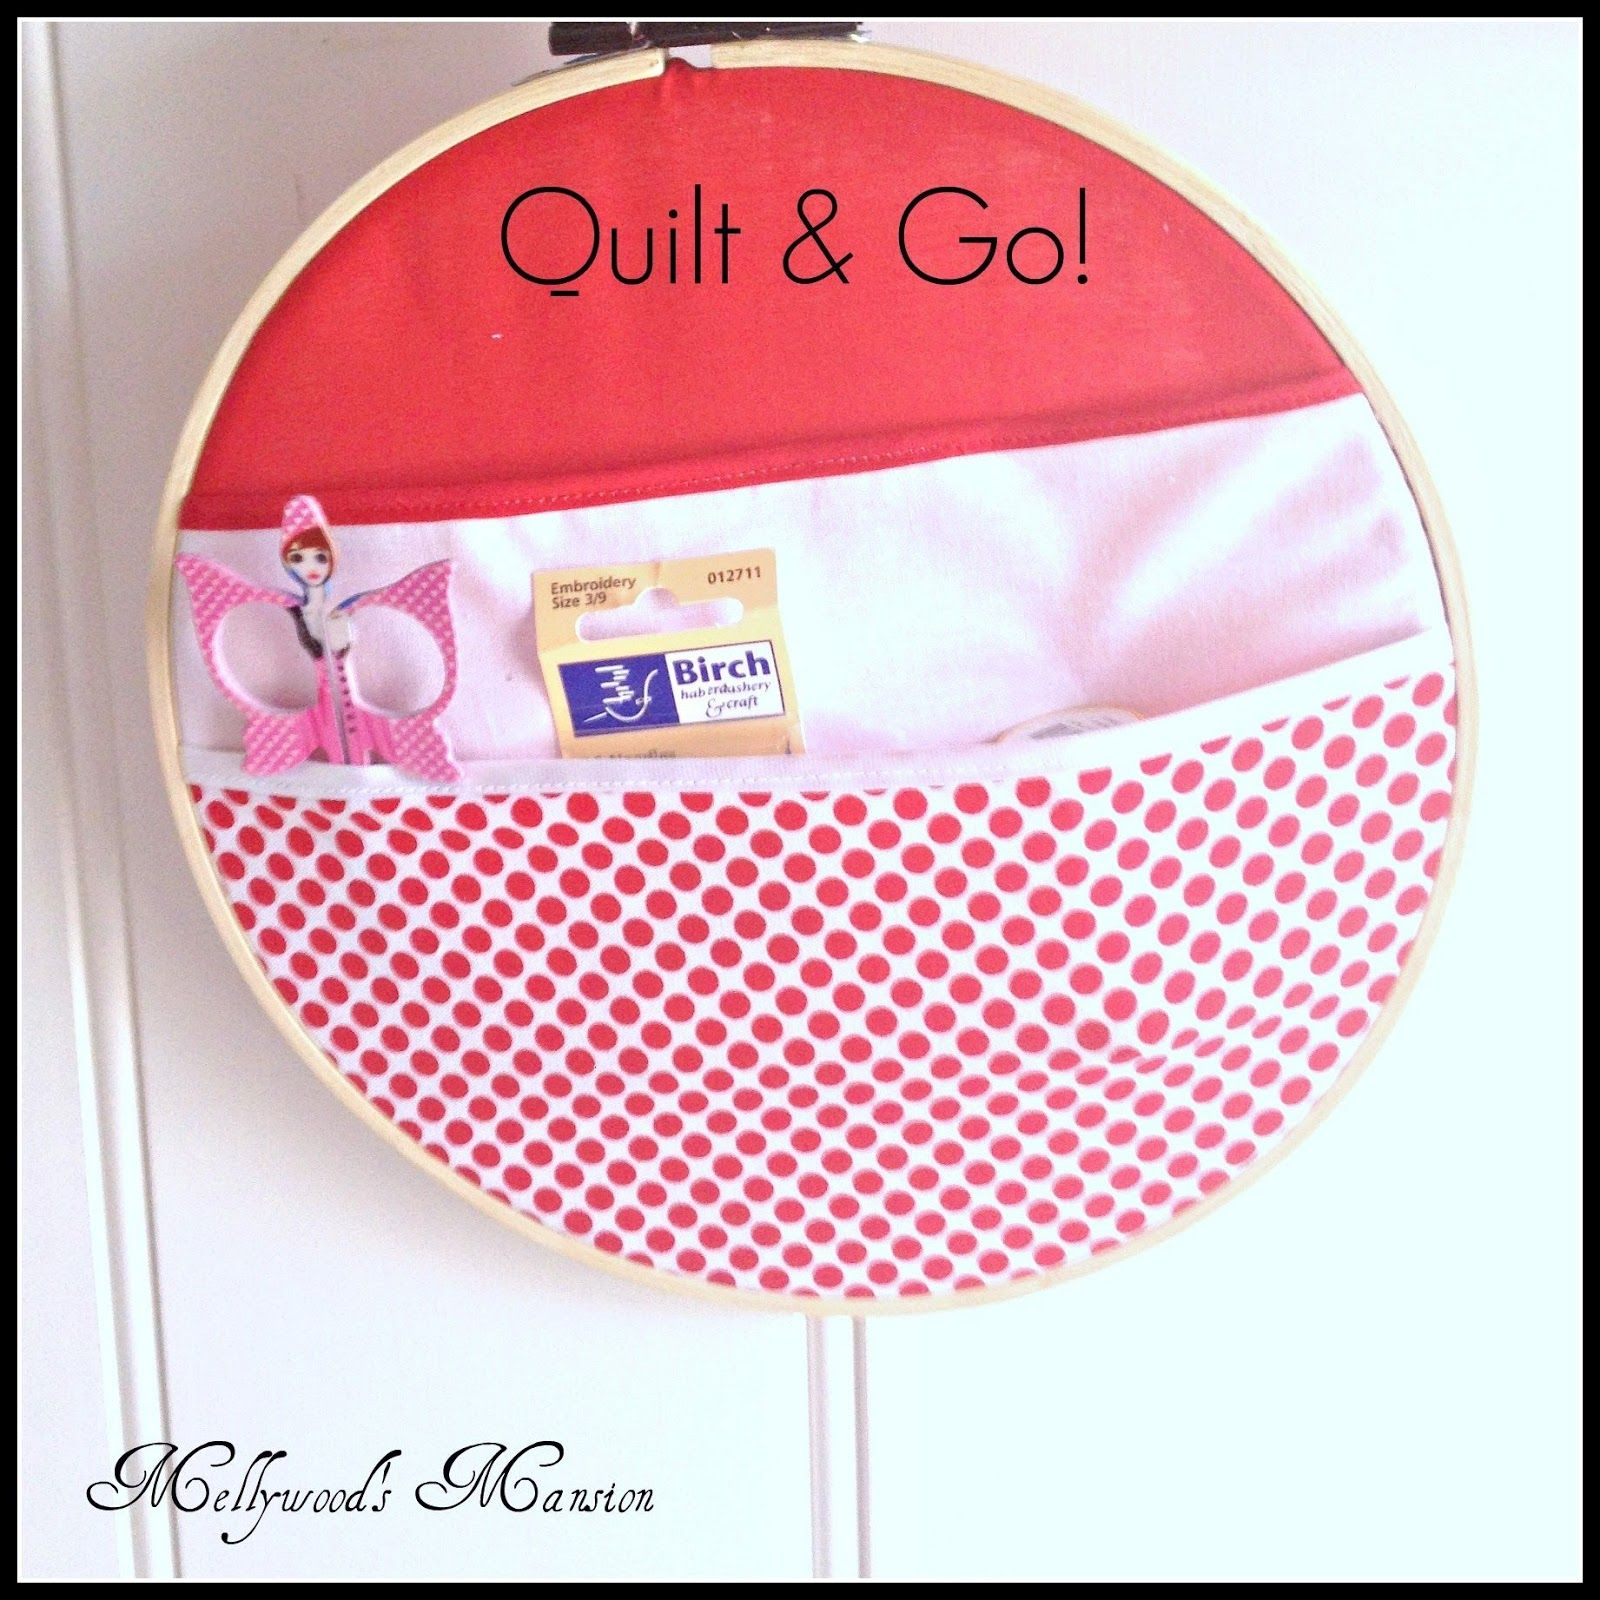 Quilt Organizer gather your latest quilt project into this little organizer and hang it up for to wait until you have a few spare minutes.